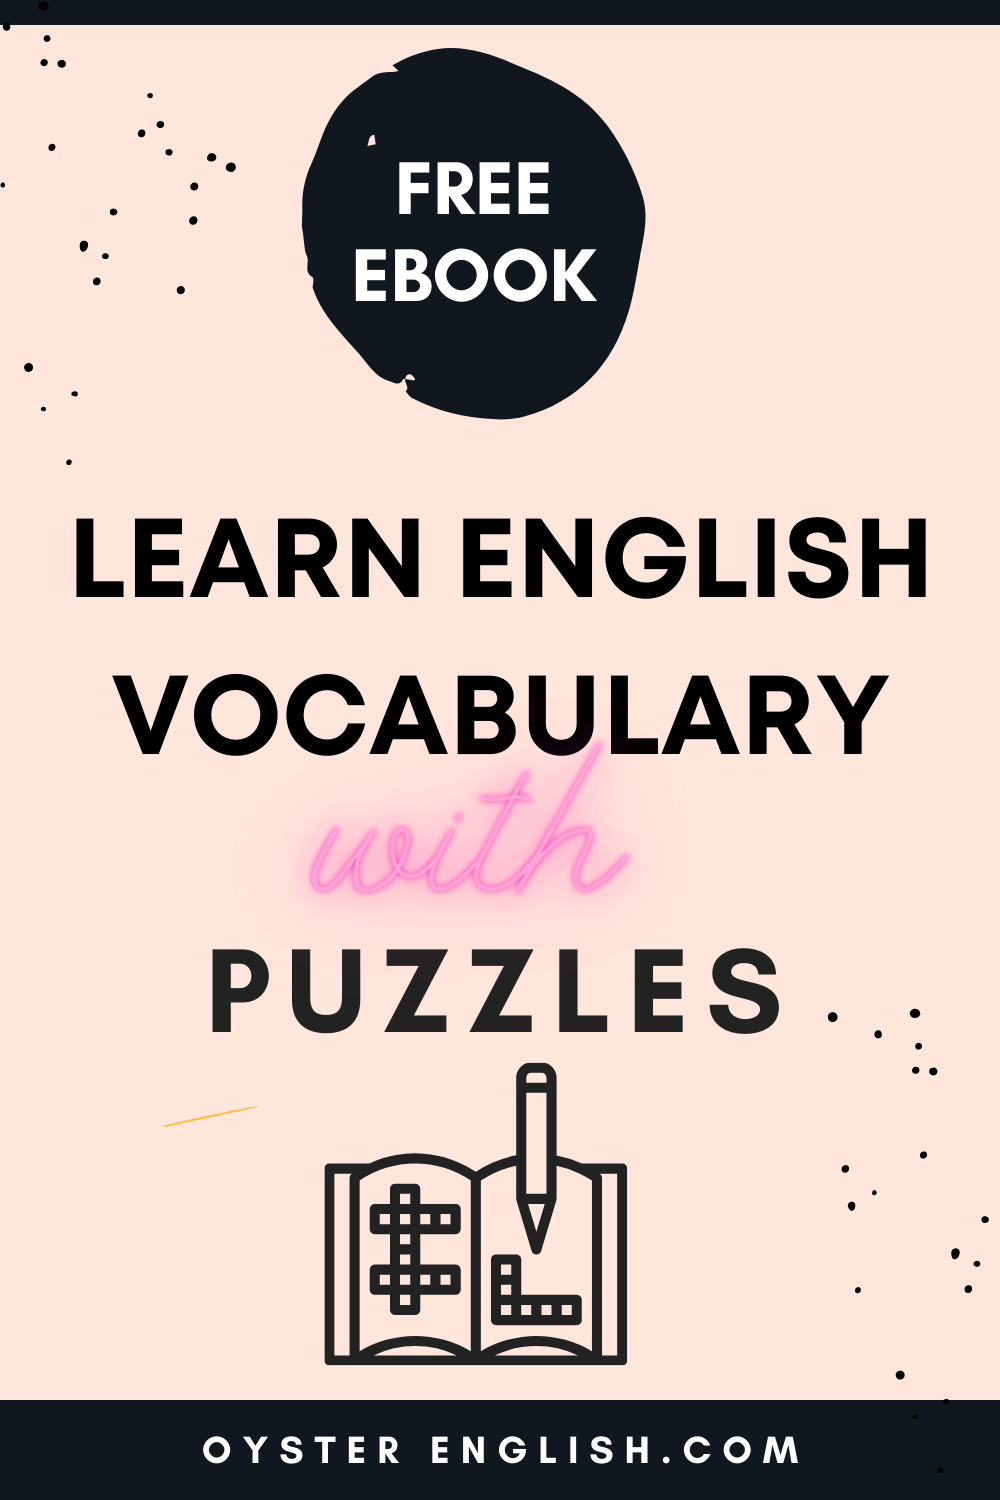 Advertisement do download our English vocabulary words puzzles ebook